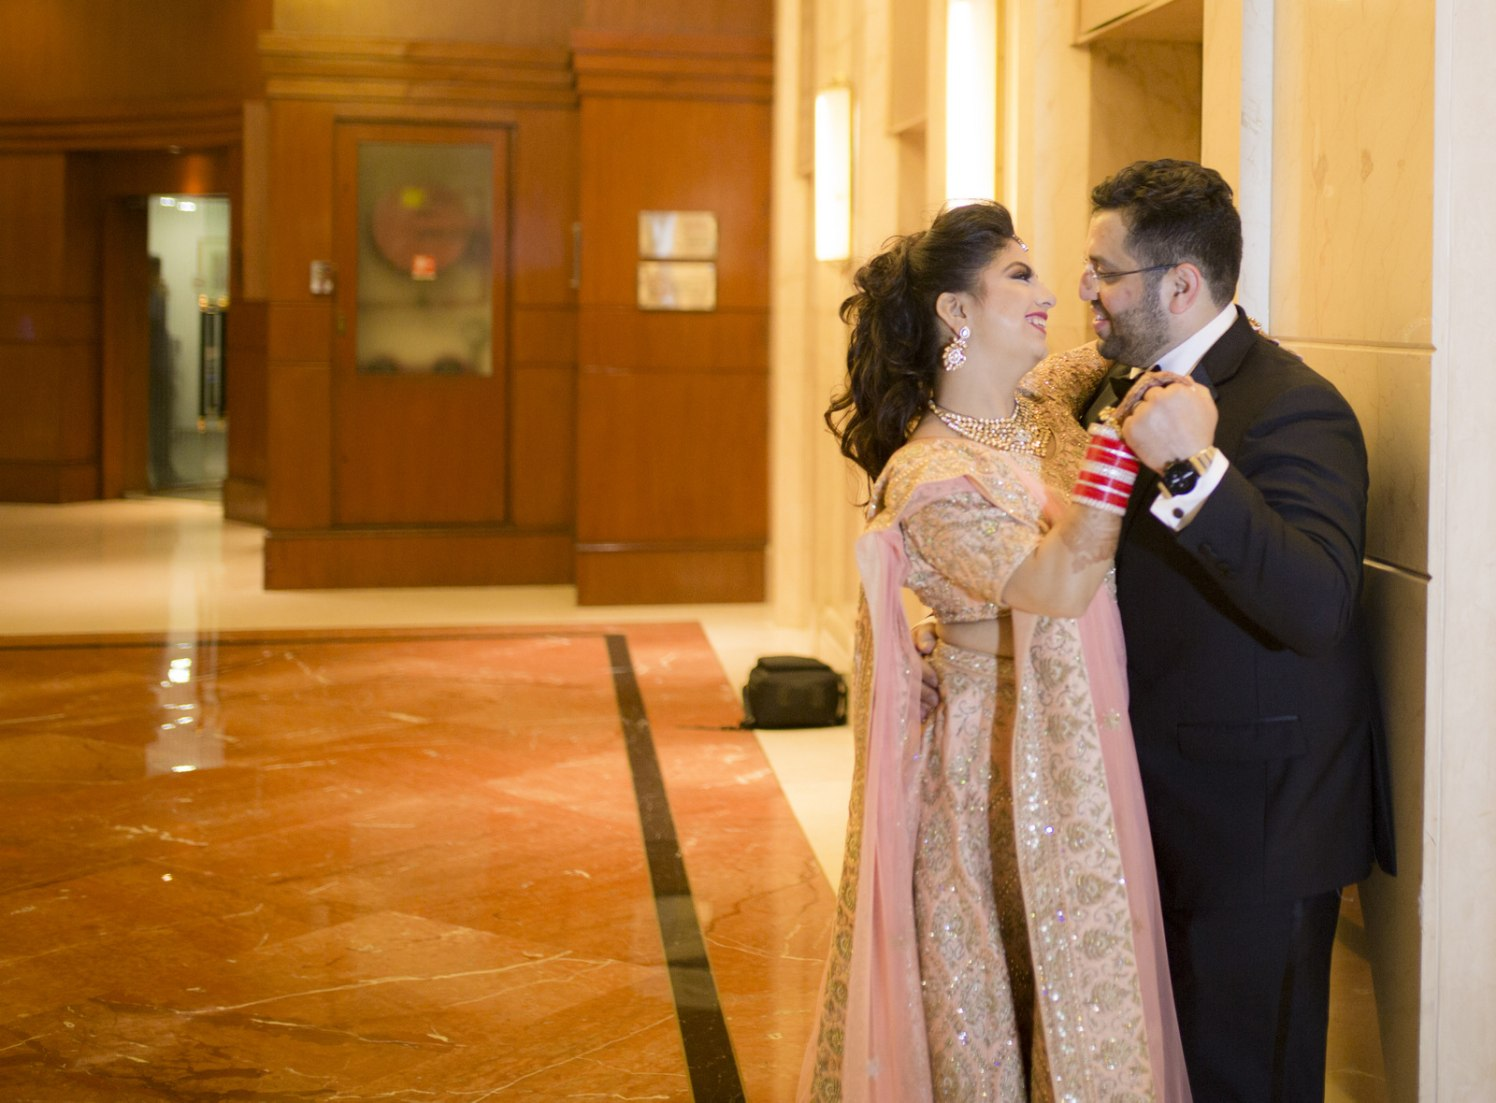 Embracing The Love That Comes Along by Arpit Gulati Wedding-photography | Weddings Photos & Ideas